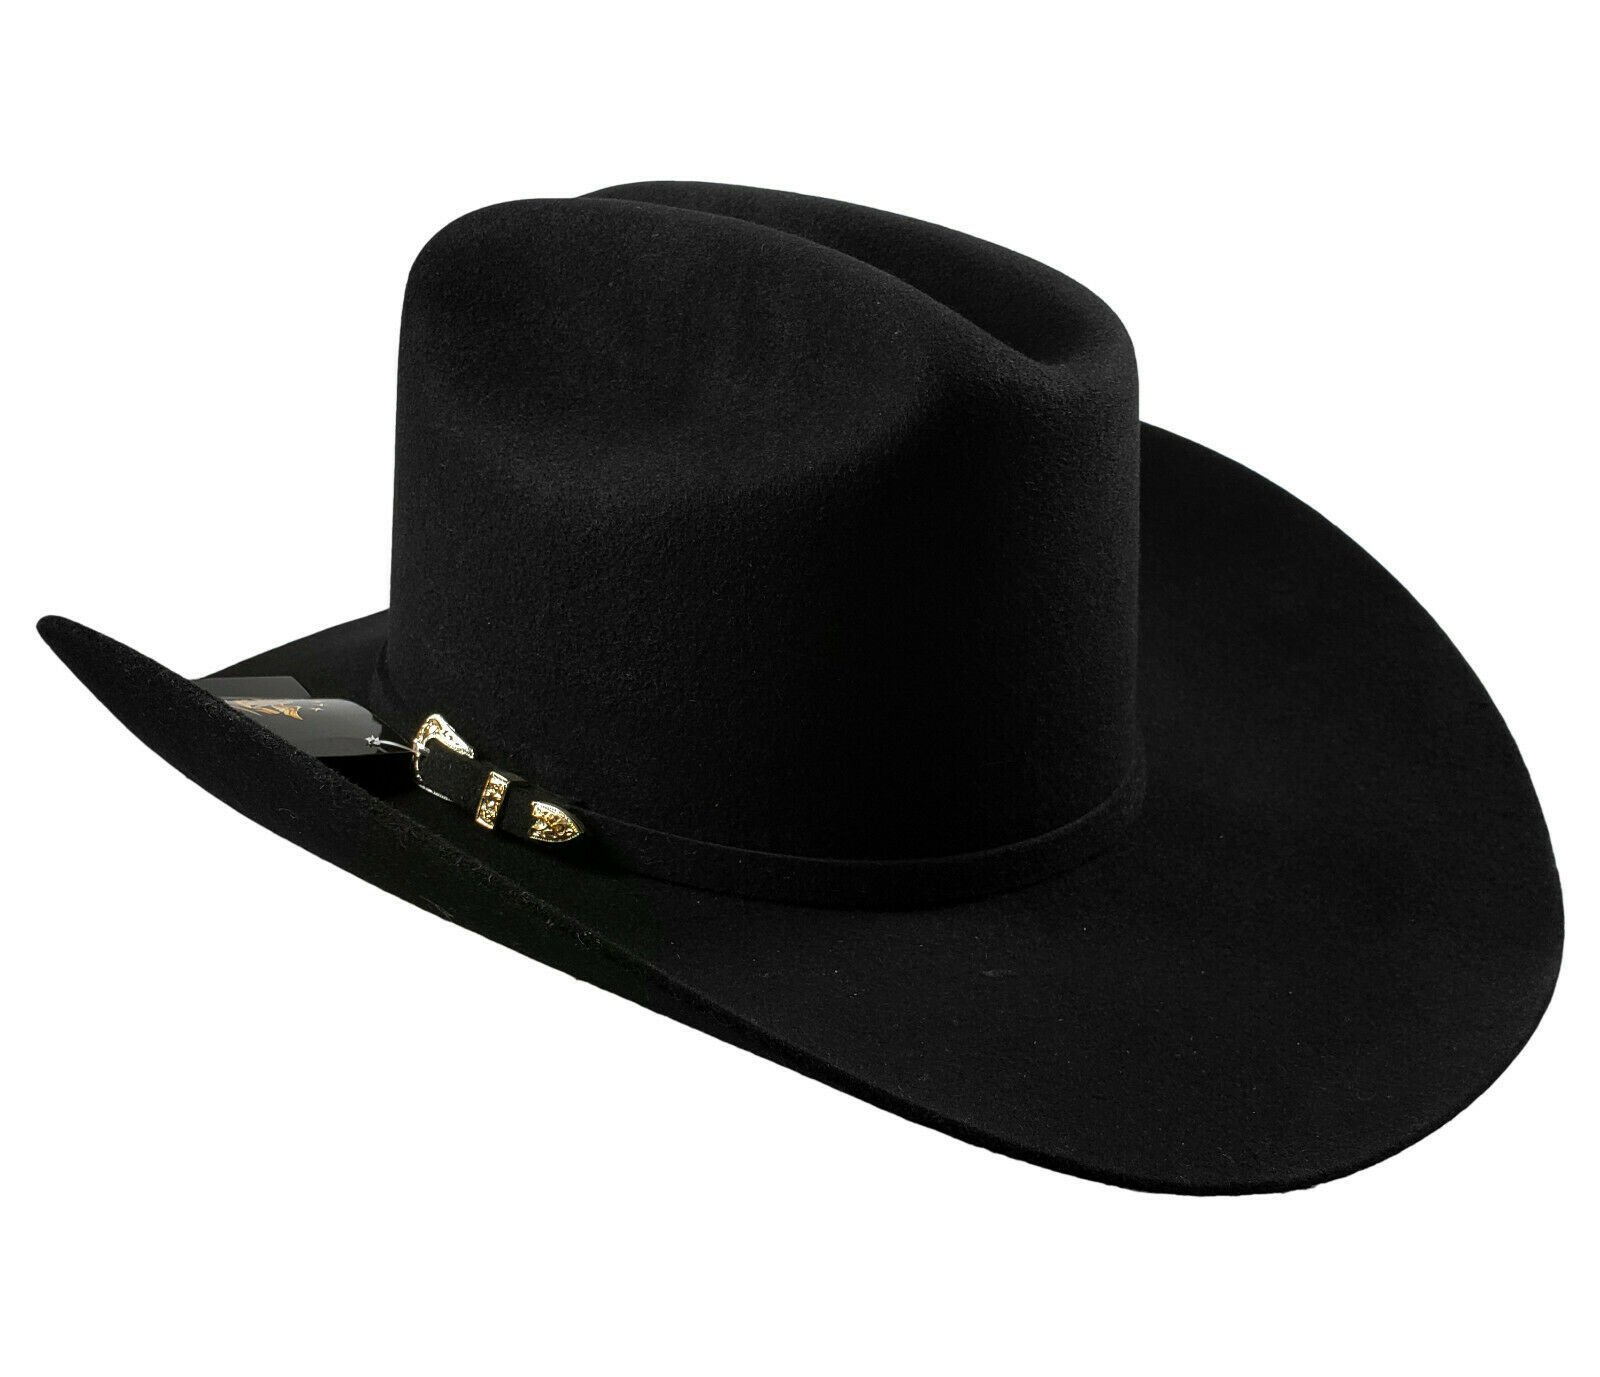 Men/'s Cowboy Hat El General Texana 50X Horma Rosendo Color Chocolate Wool